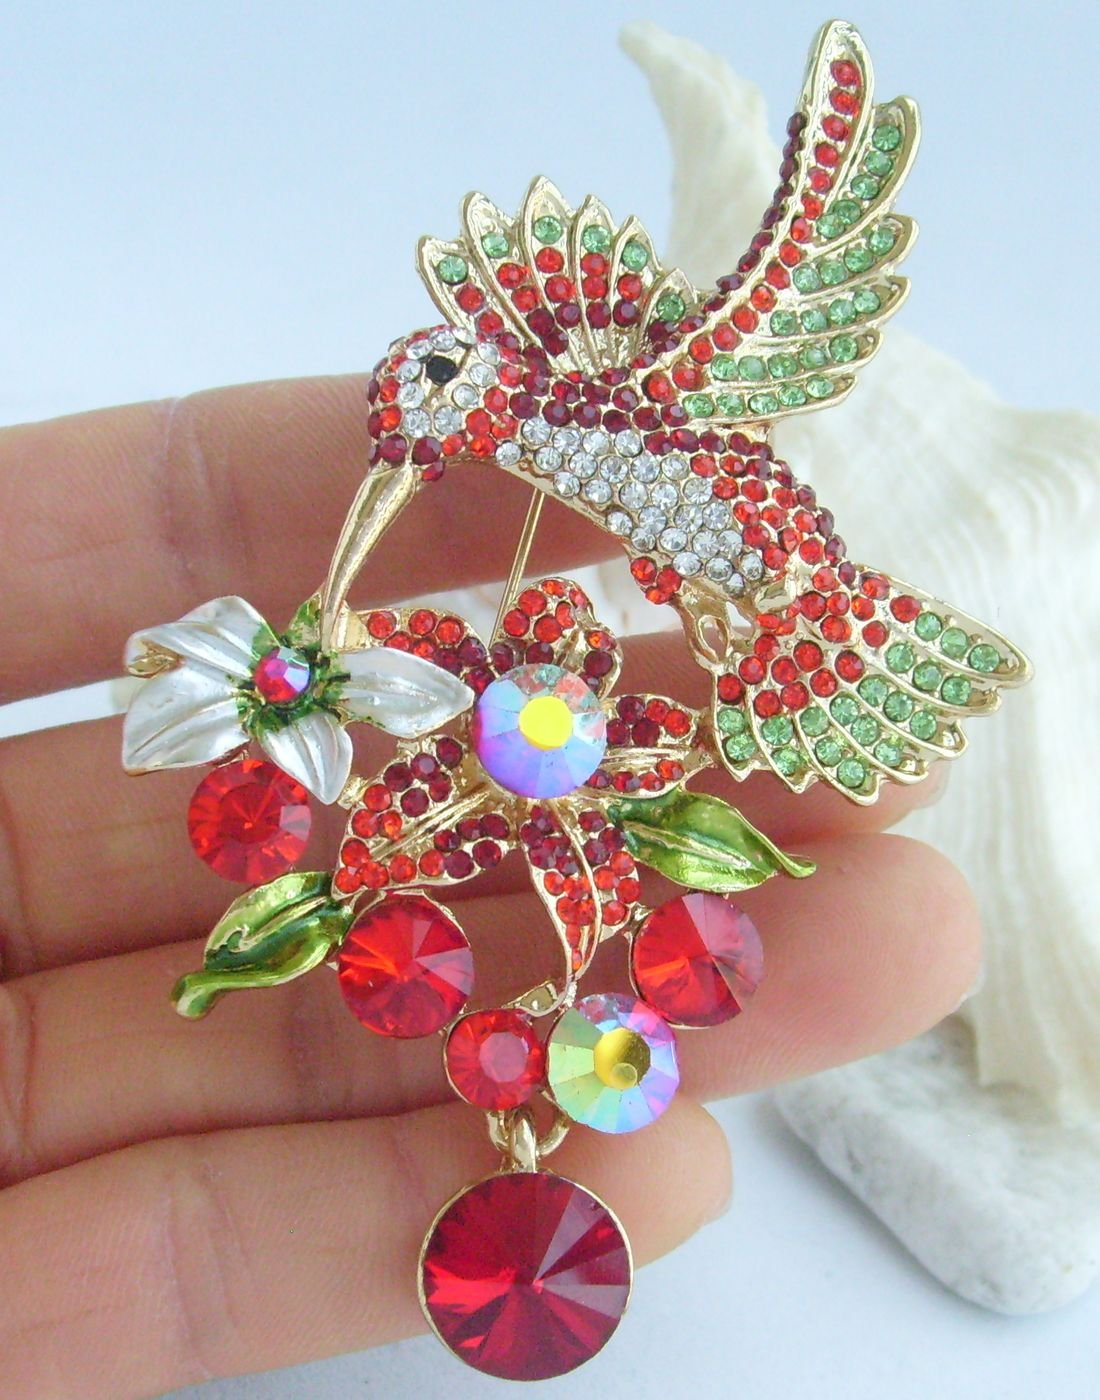 Sindary Pretty 3.54'' Animal Pendant Hummingbird Brooch Pin Rhinestone Crystal BZ6385 (Gold-Tone Red) by Animal Brooch-Sindary Jewelry (Image #2)